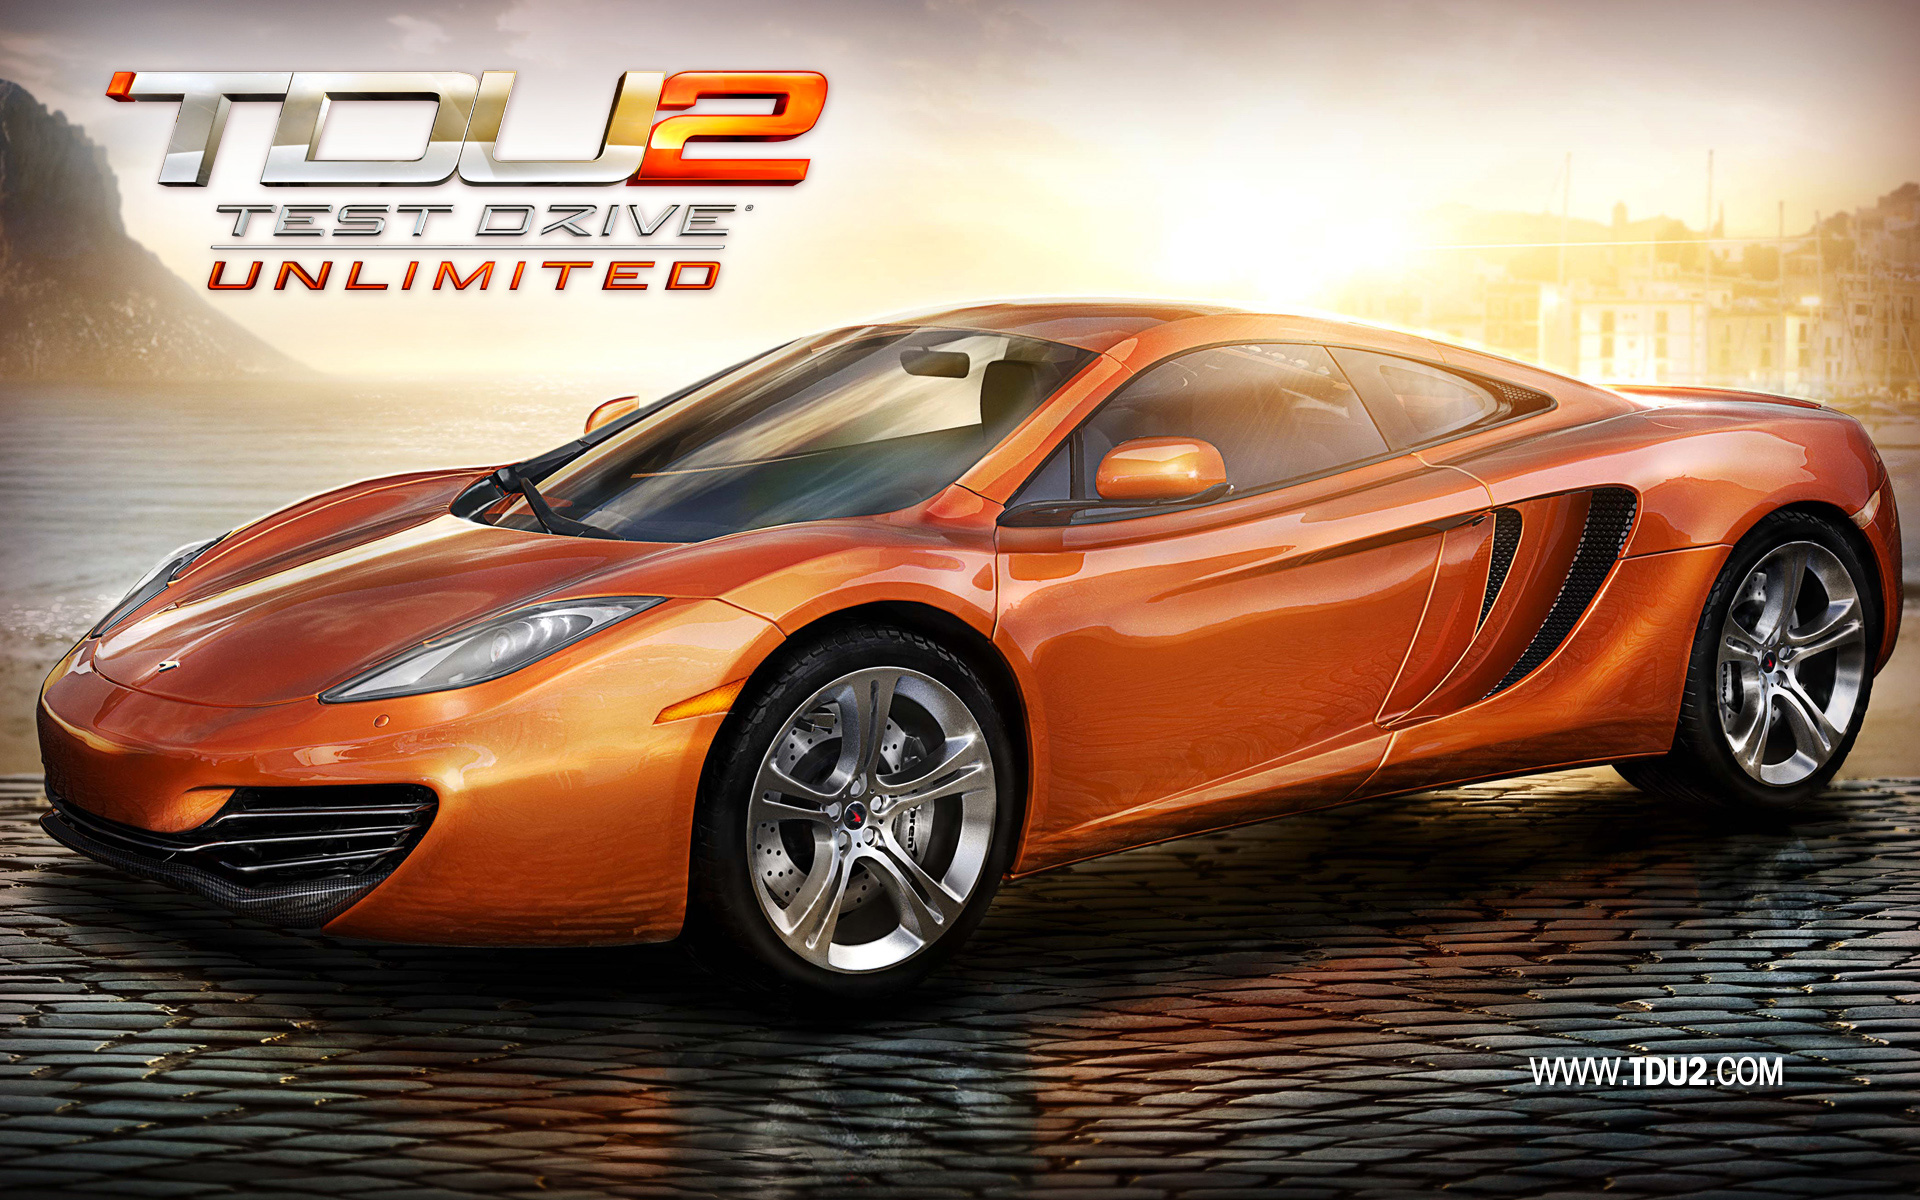 Test Drive Unlimited 2 Wallpaper